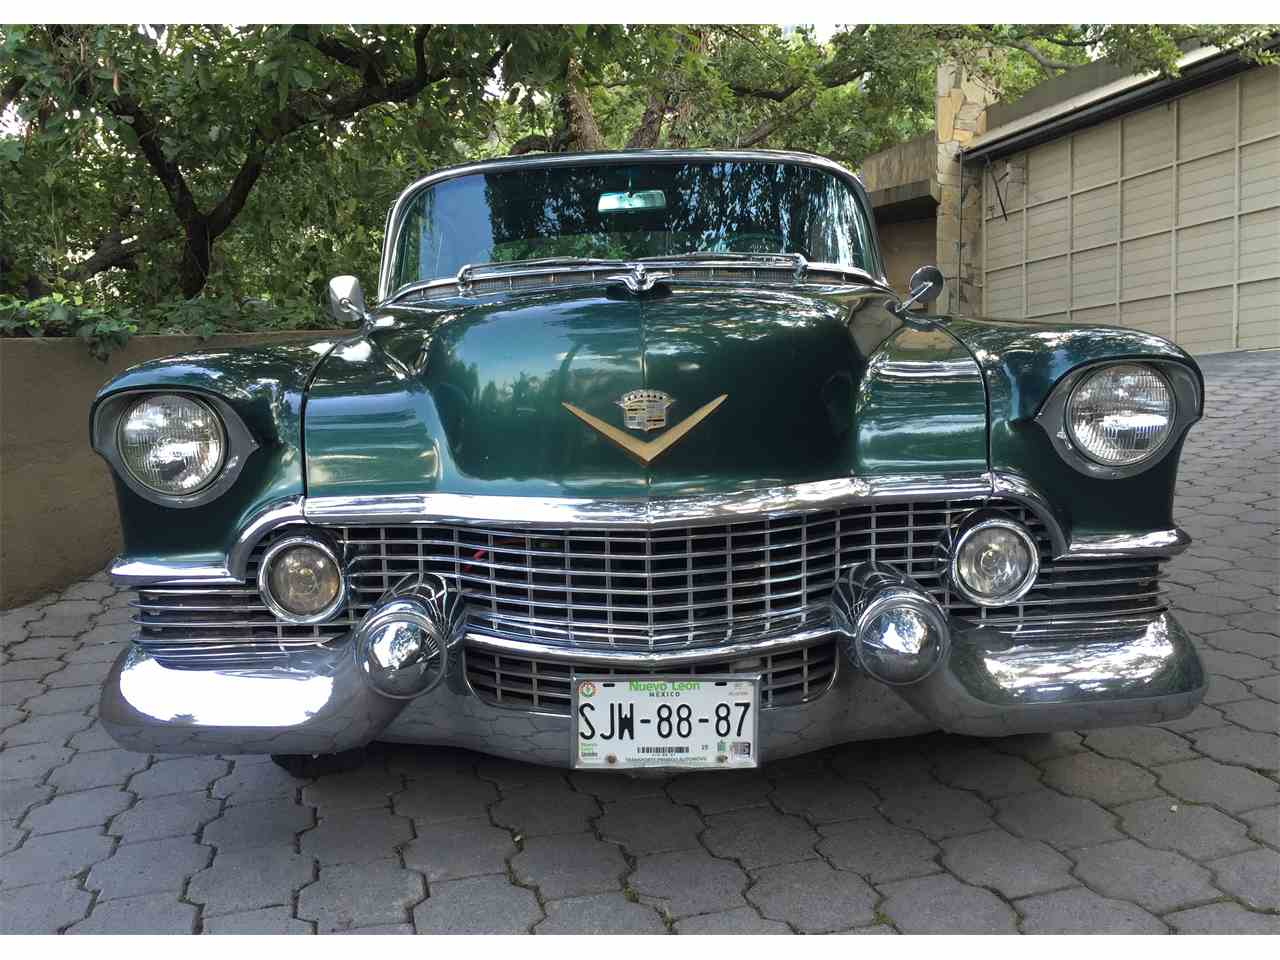 Large Picture of '54 Cadillac Coupe DeVille - $29,500.00 Offered by a Private Seller - INAP